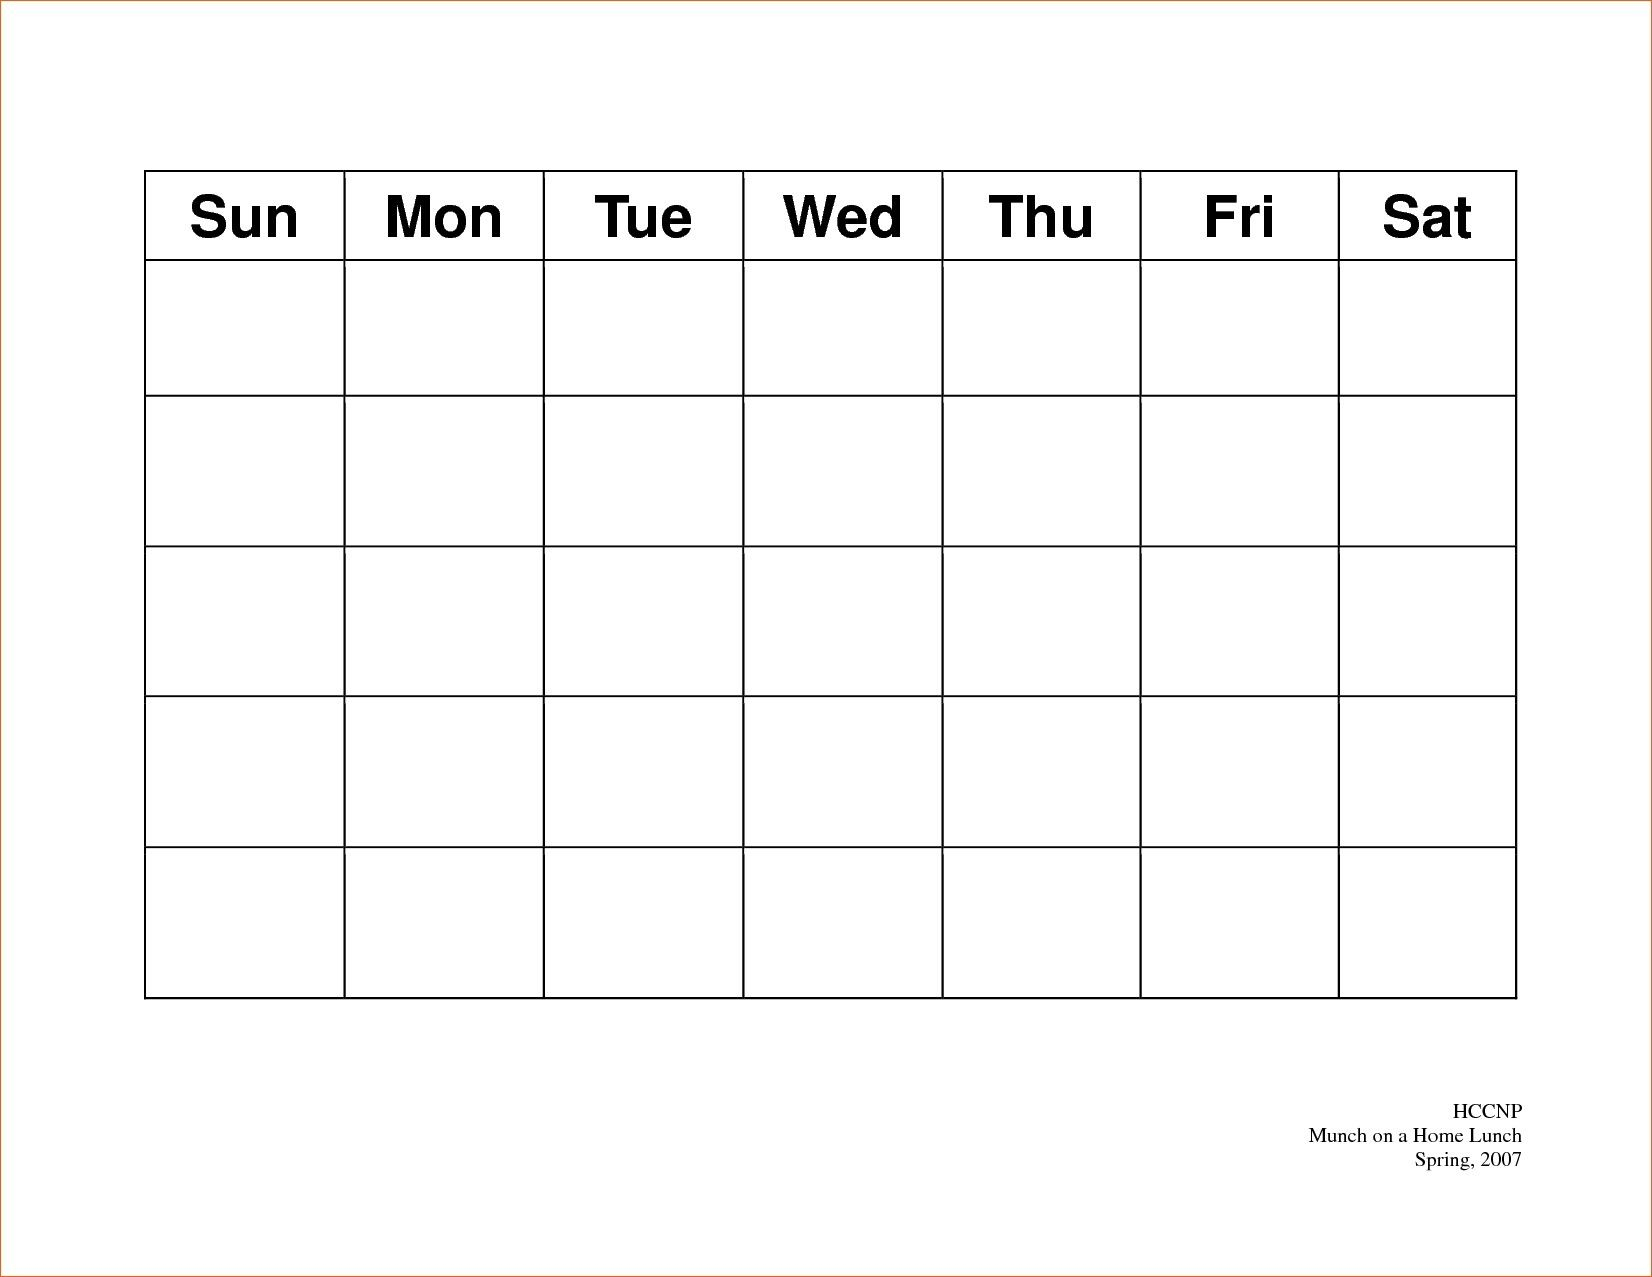 Calendar 5 Day Weekly Calendar Template On 5 Week Calendar pertaining to 5 Day Weekly Calendar Template